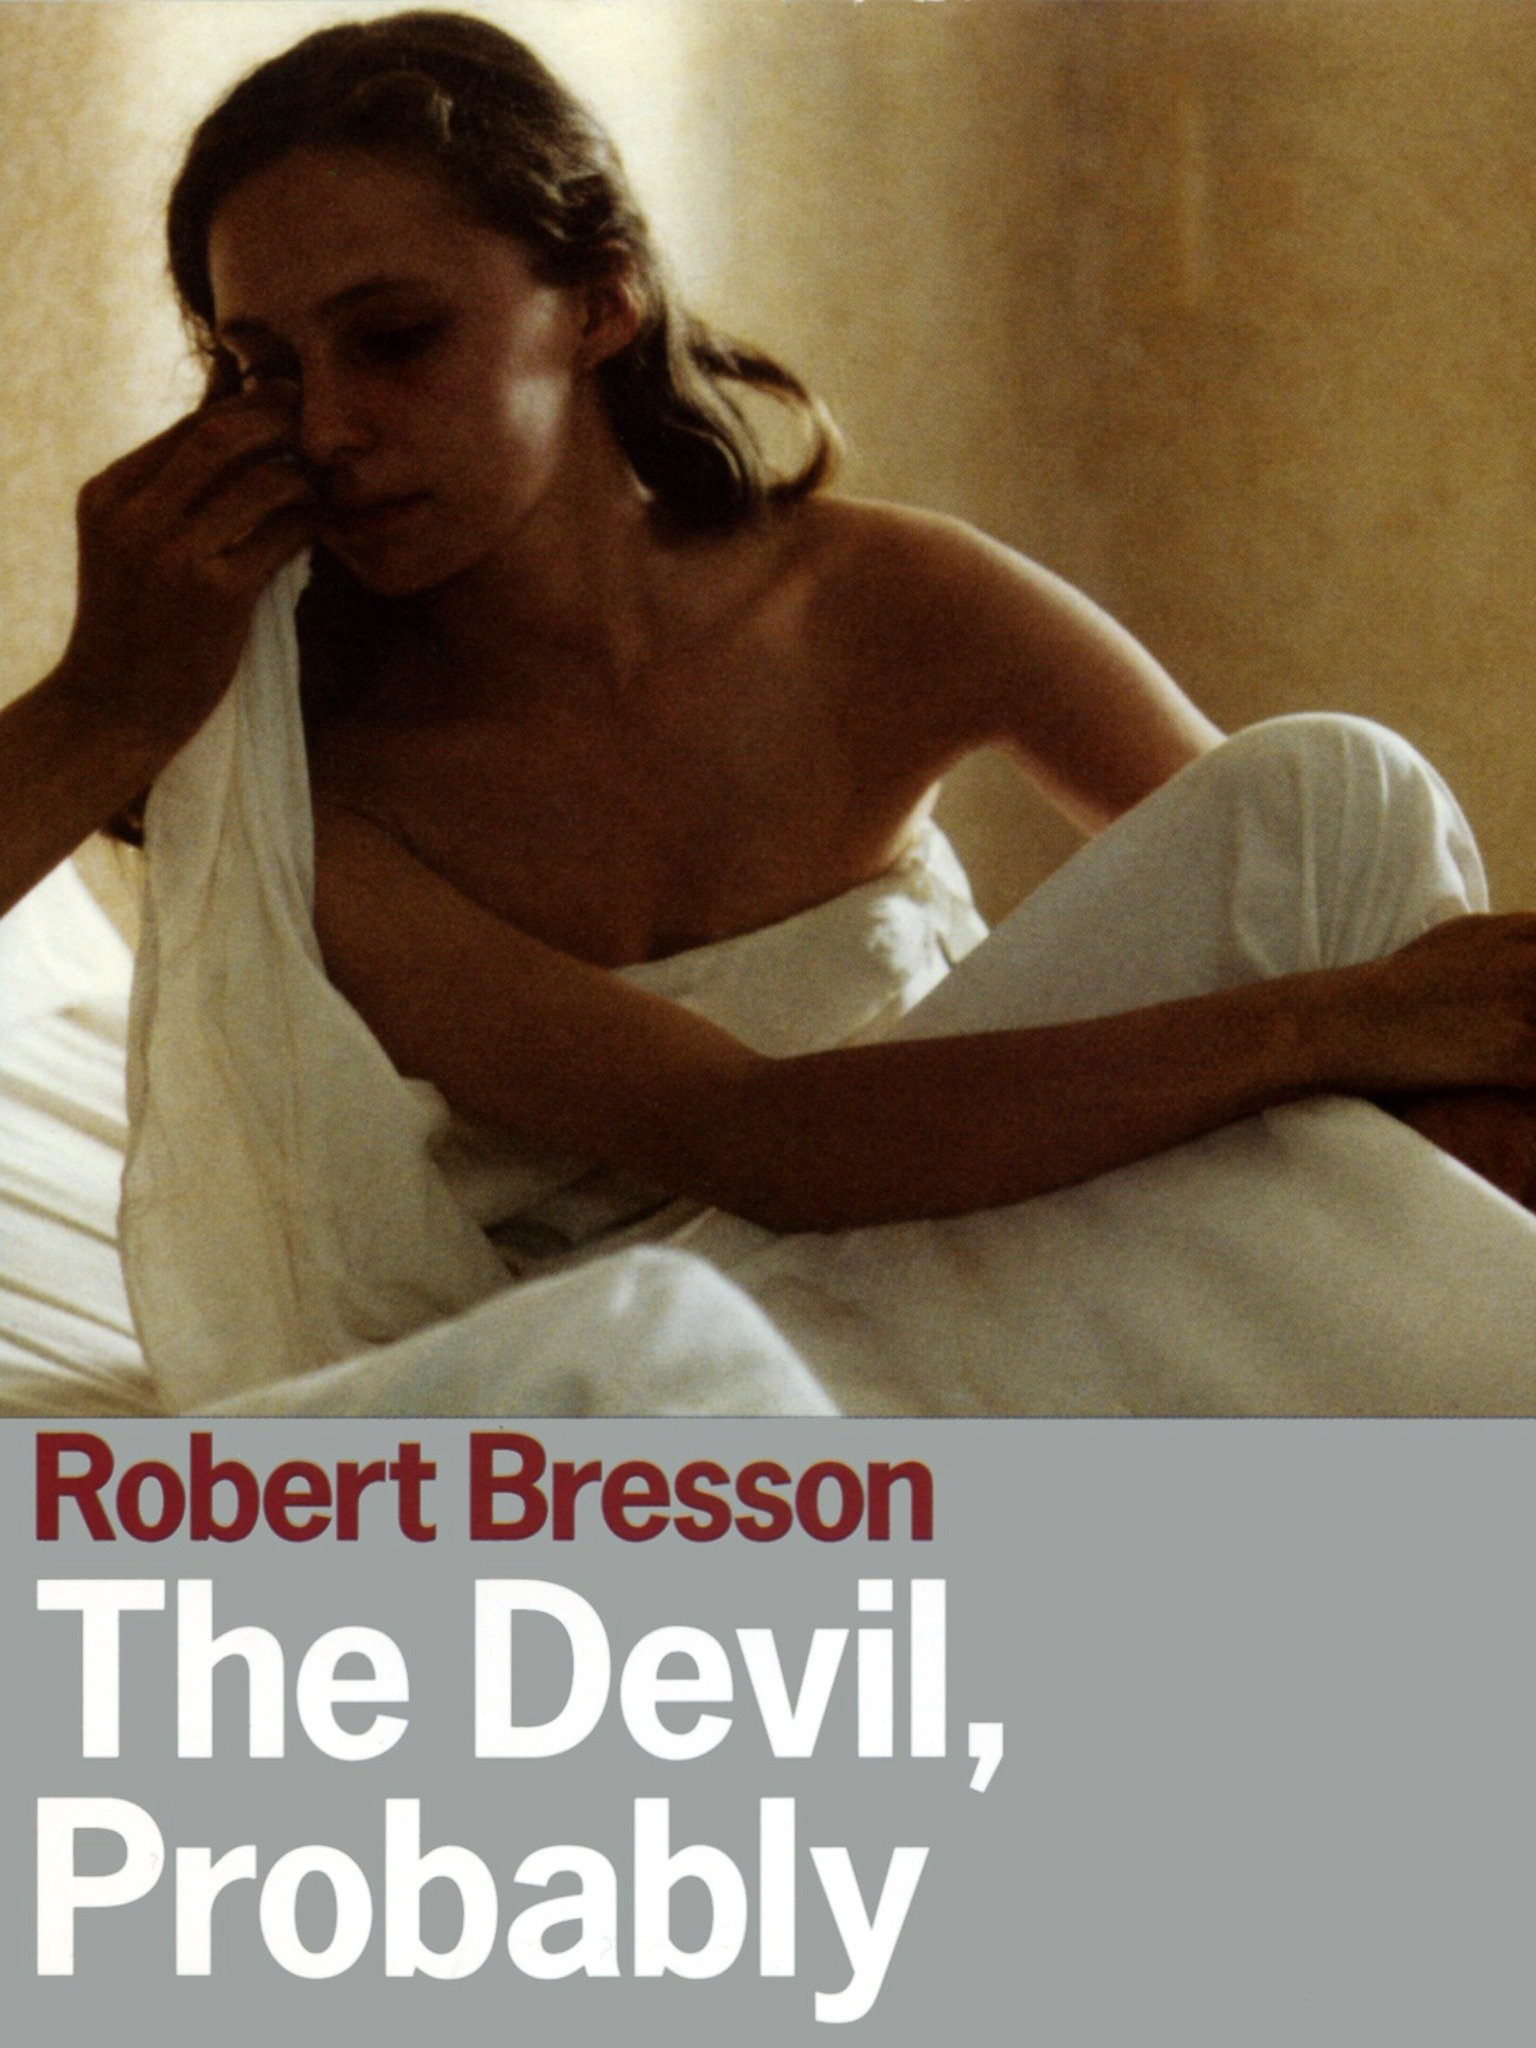 The Devil Probably (Le diable probablement)